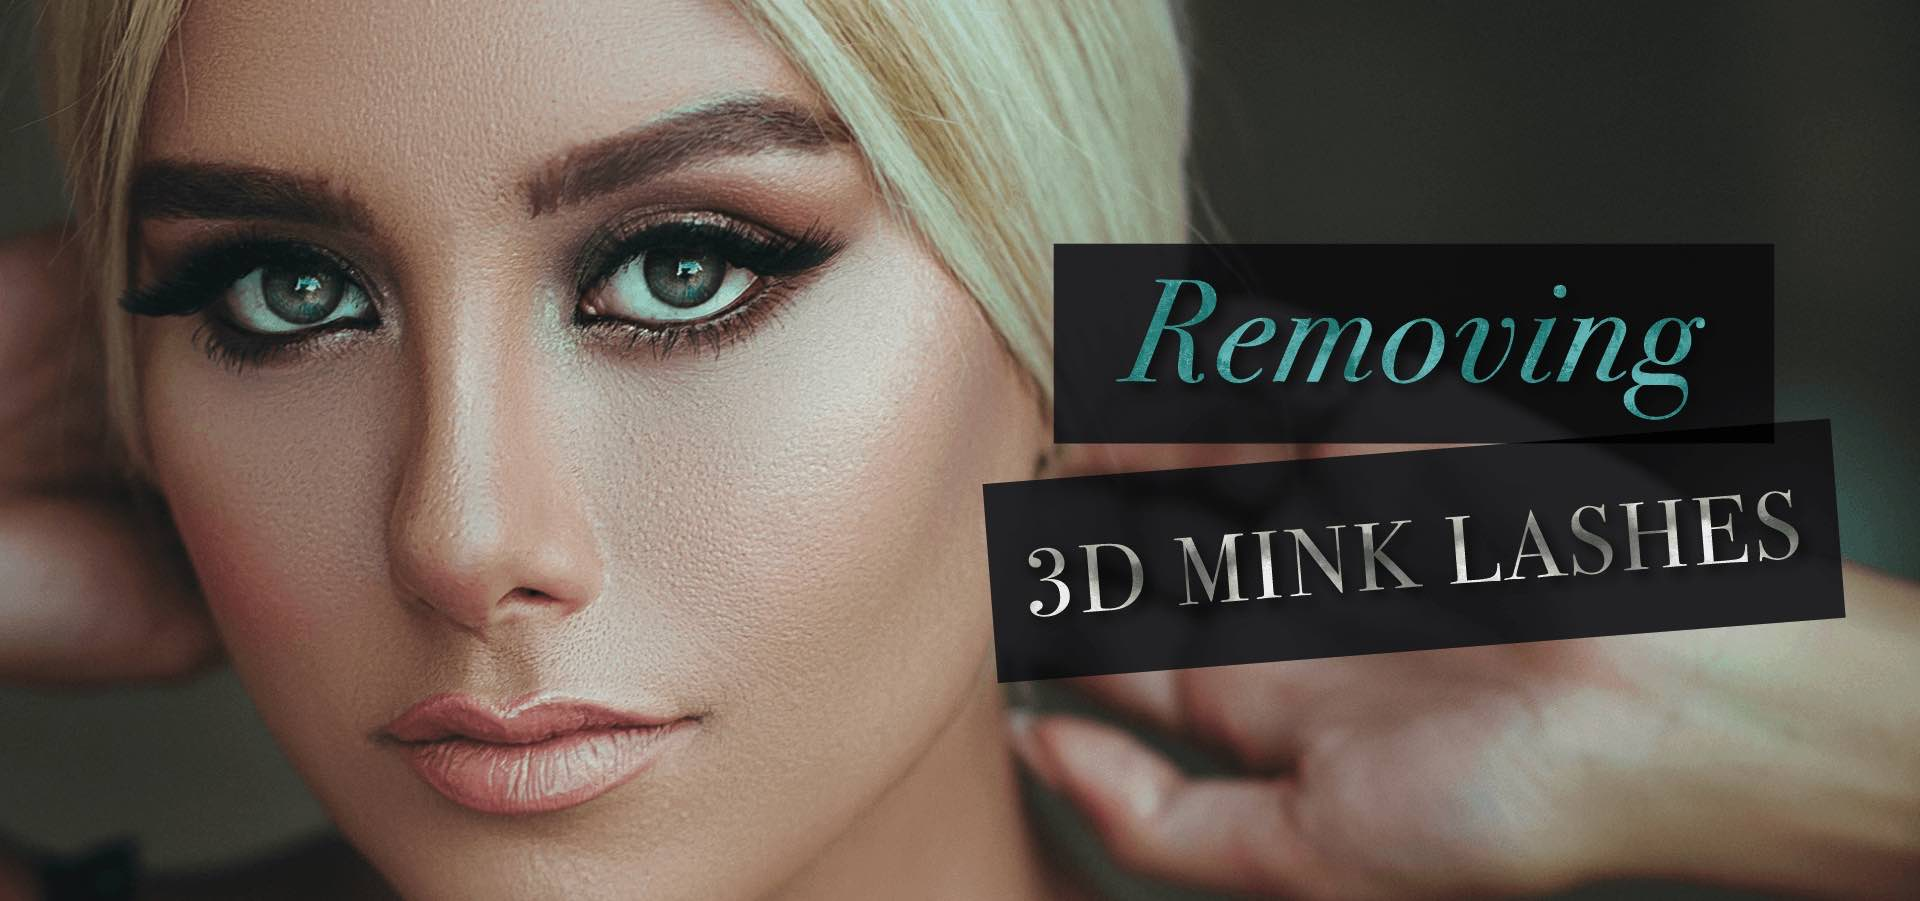 How to remove 3d mink lashes